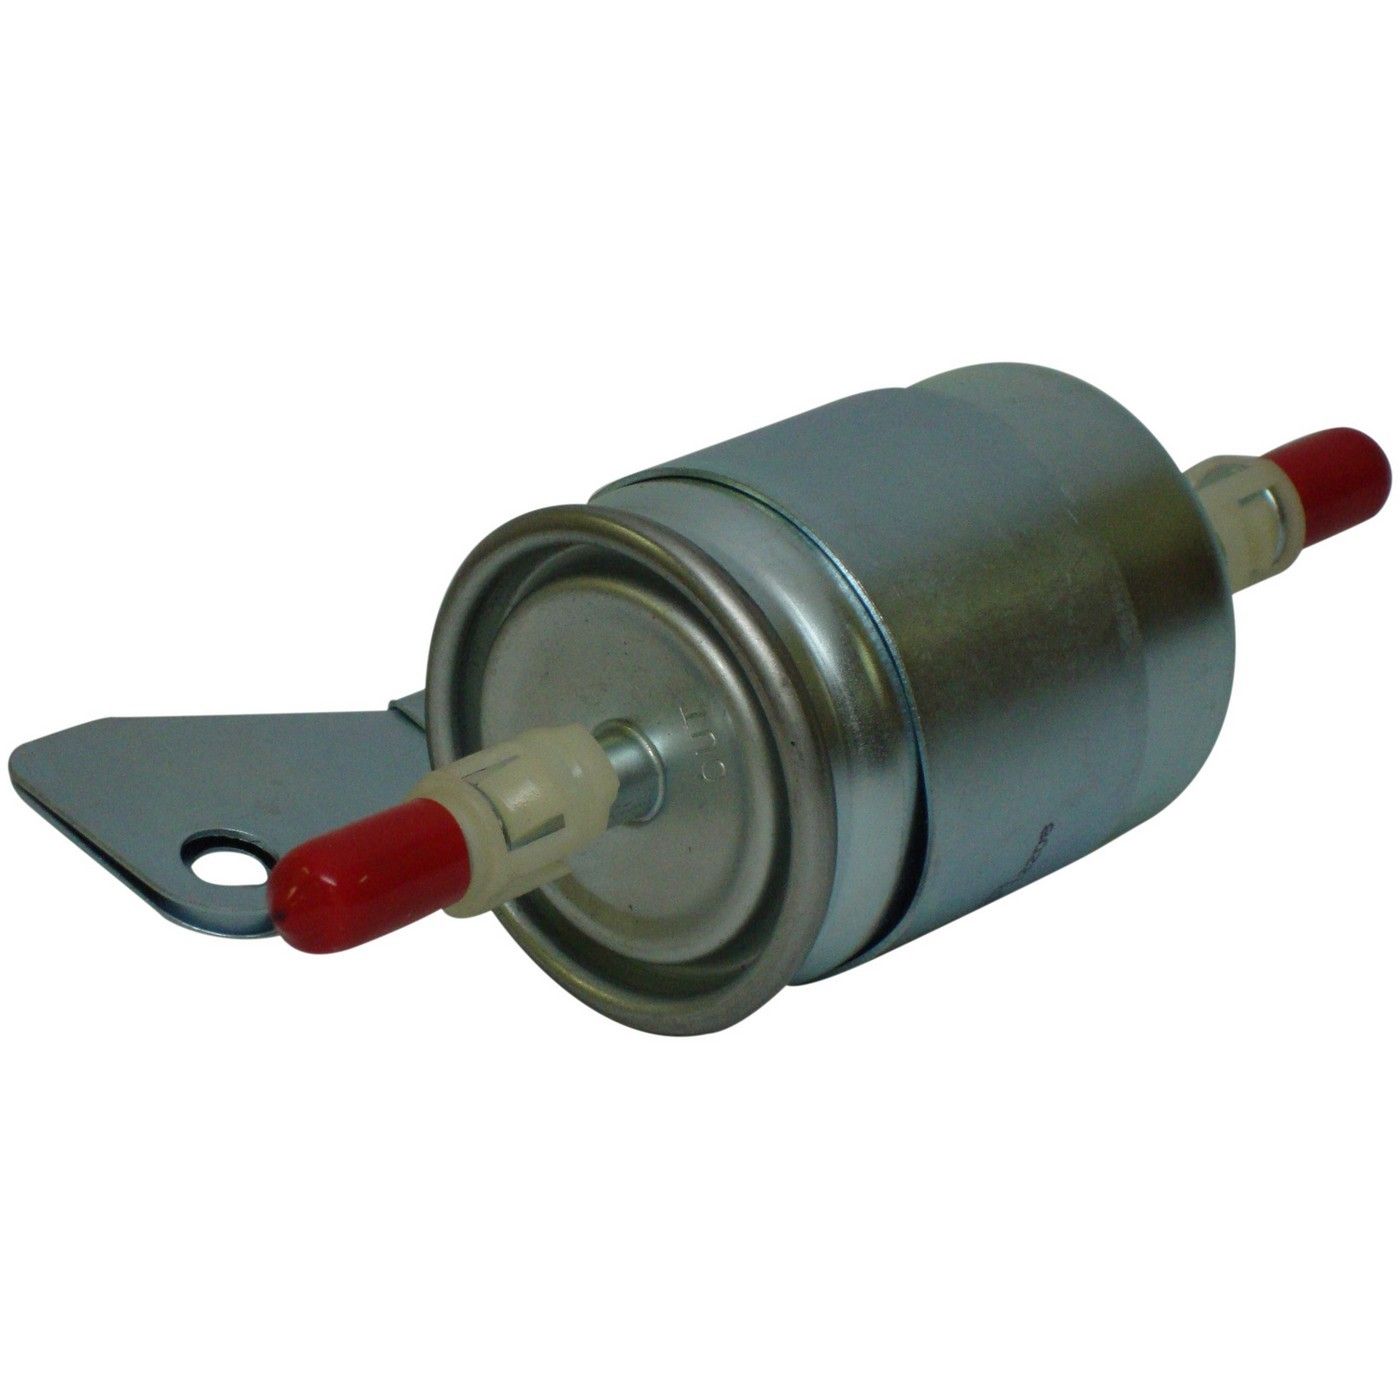 Fuel Filters Bosch Auto Parts Help To Protect The Most Expensive Of Engine By Filtering Out Foreign Particles That Can Damage A Injector